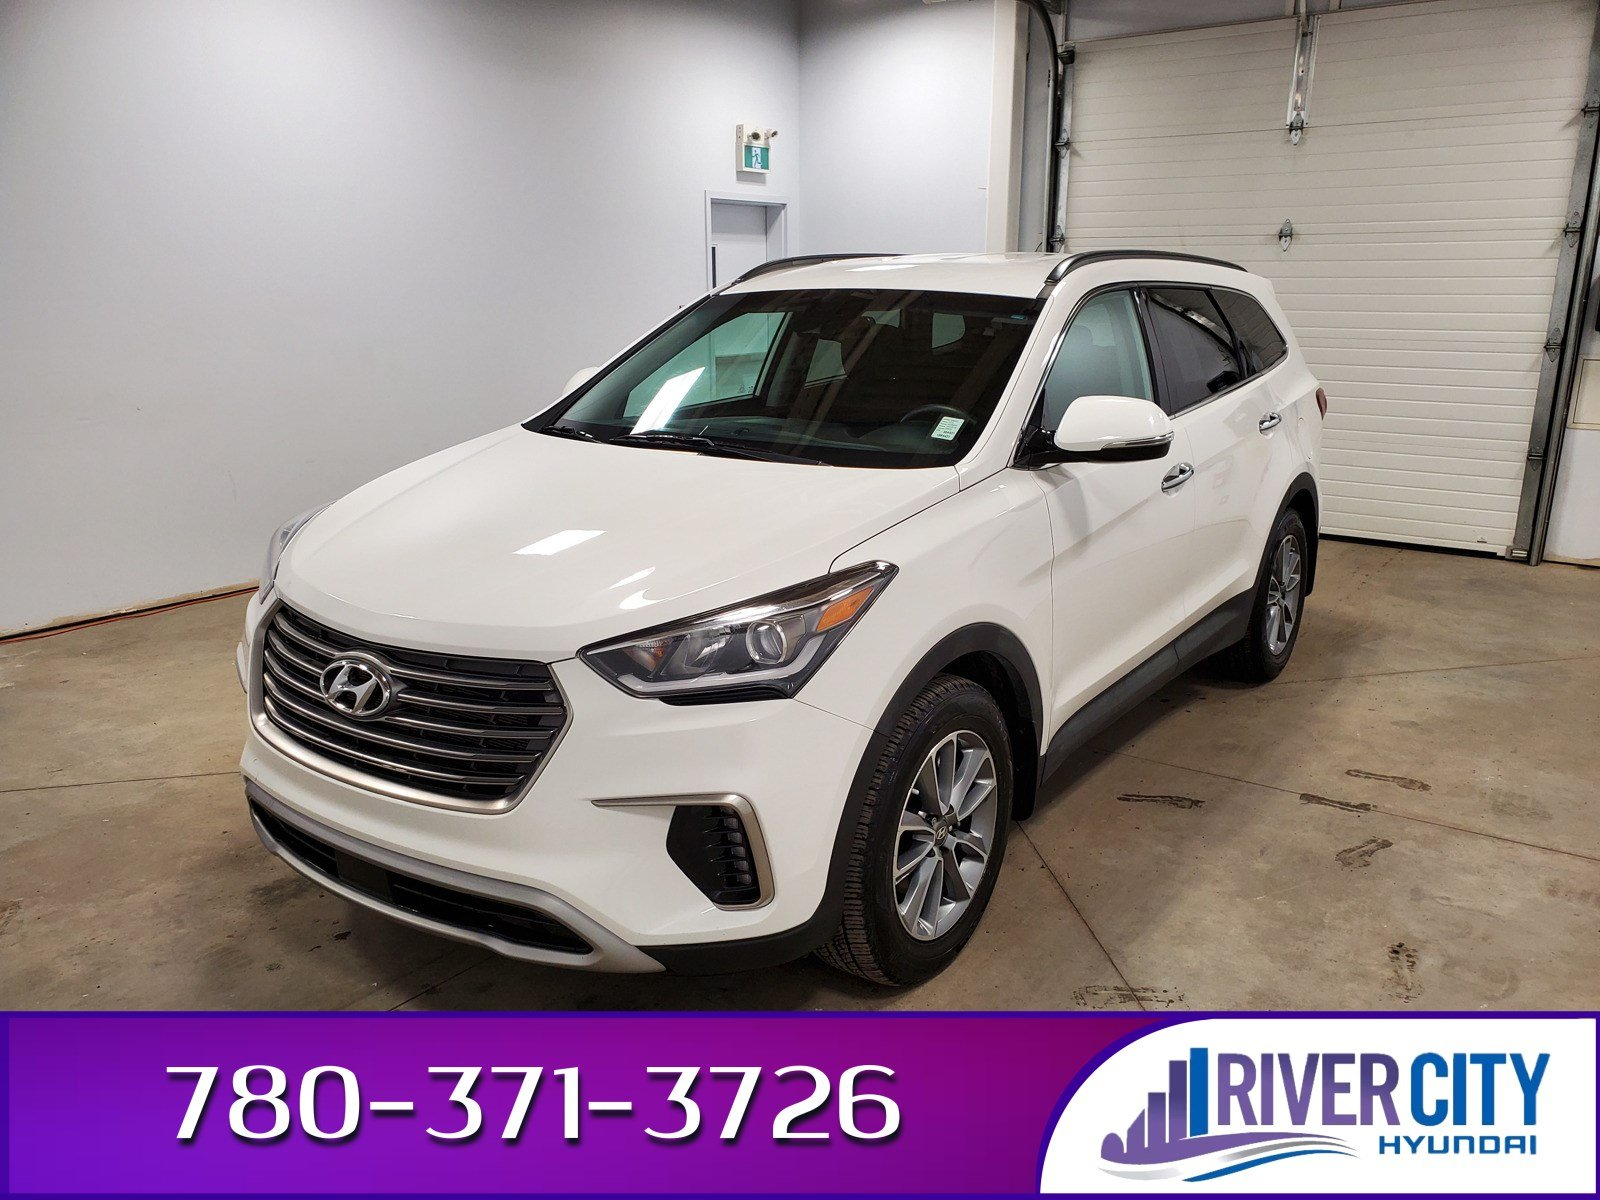 Certified Pre-Owned 2019 Hyundai Santa Fe XL AWD PREFERRED 7 PASS Heated Seats, Back-up Cam, Bluetooth, A/C,